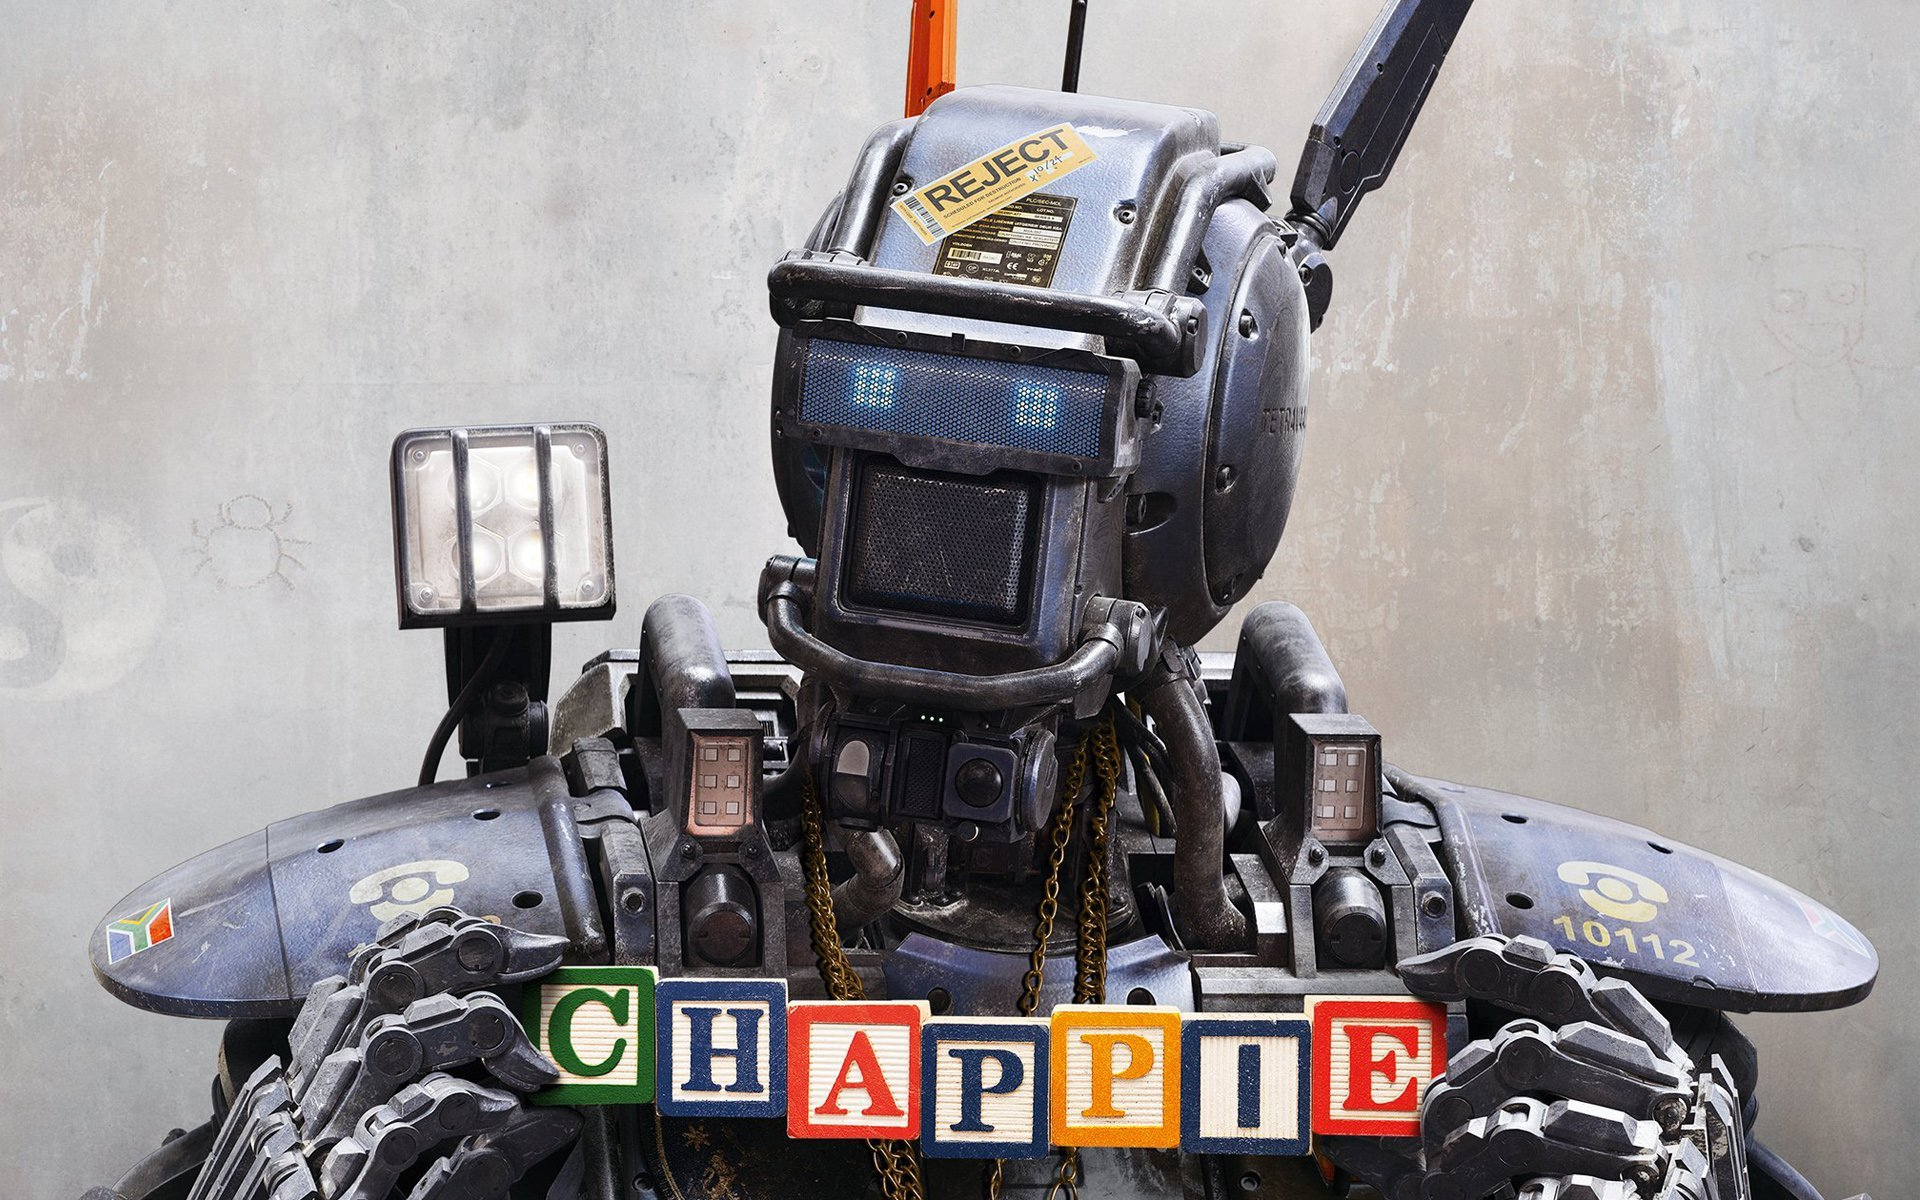 chappie-movie-review-57105832-970d-48bb-98b8-6cea4bae5ce6